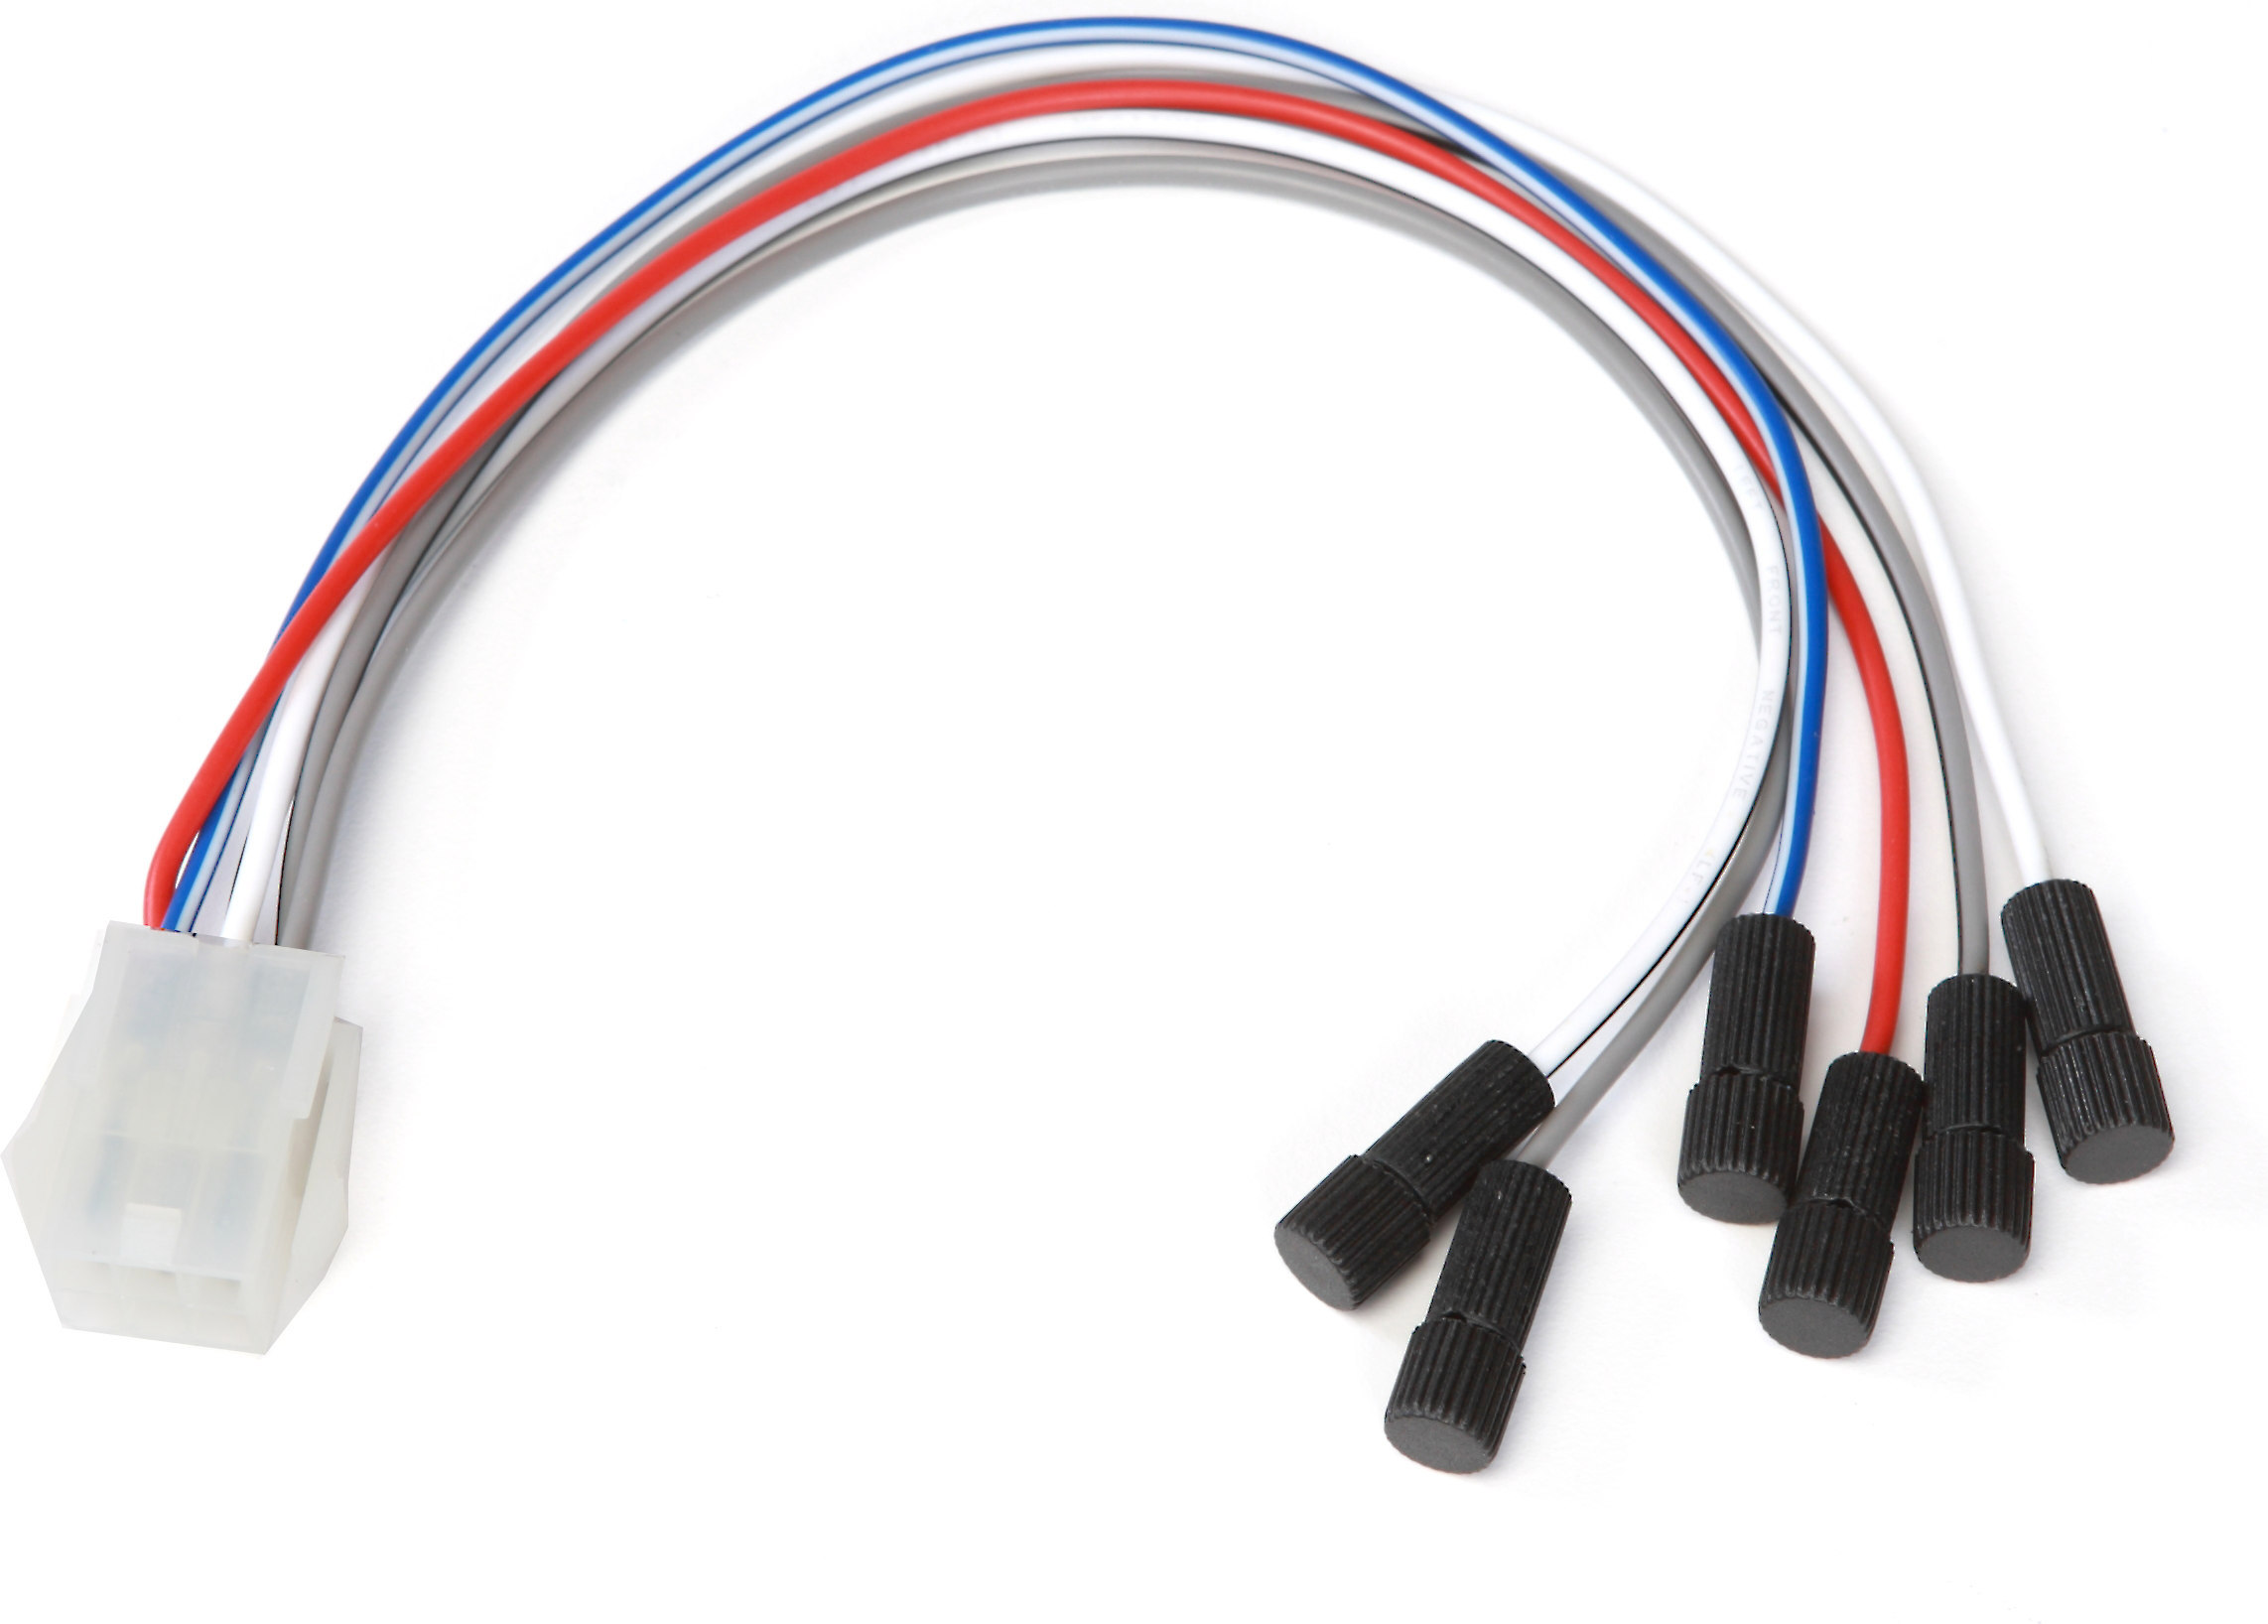 Bazooka F.A.S.T.-9999 Universal connection harness for powered Bass Tubes  at Crutchfield Crutchfield